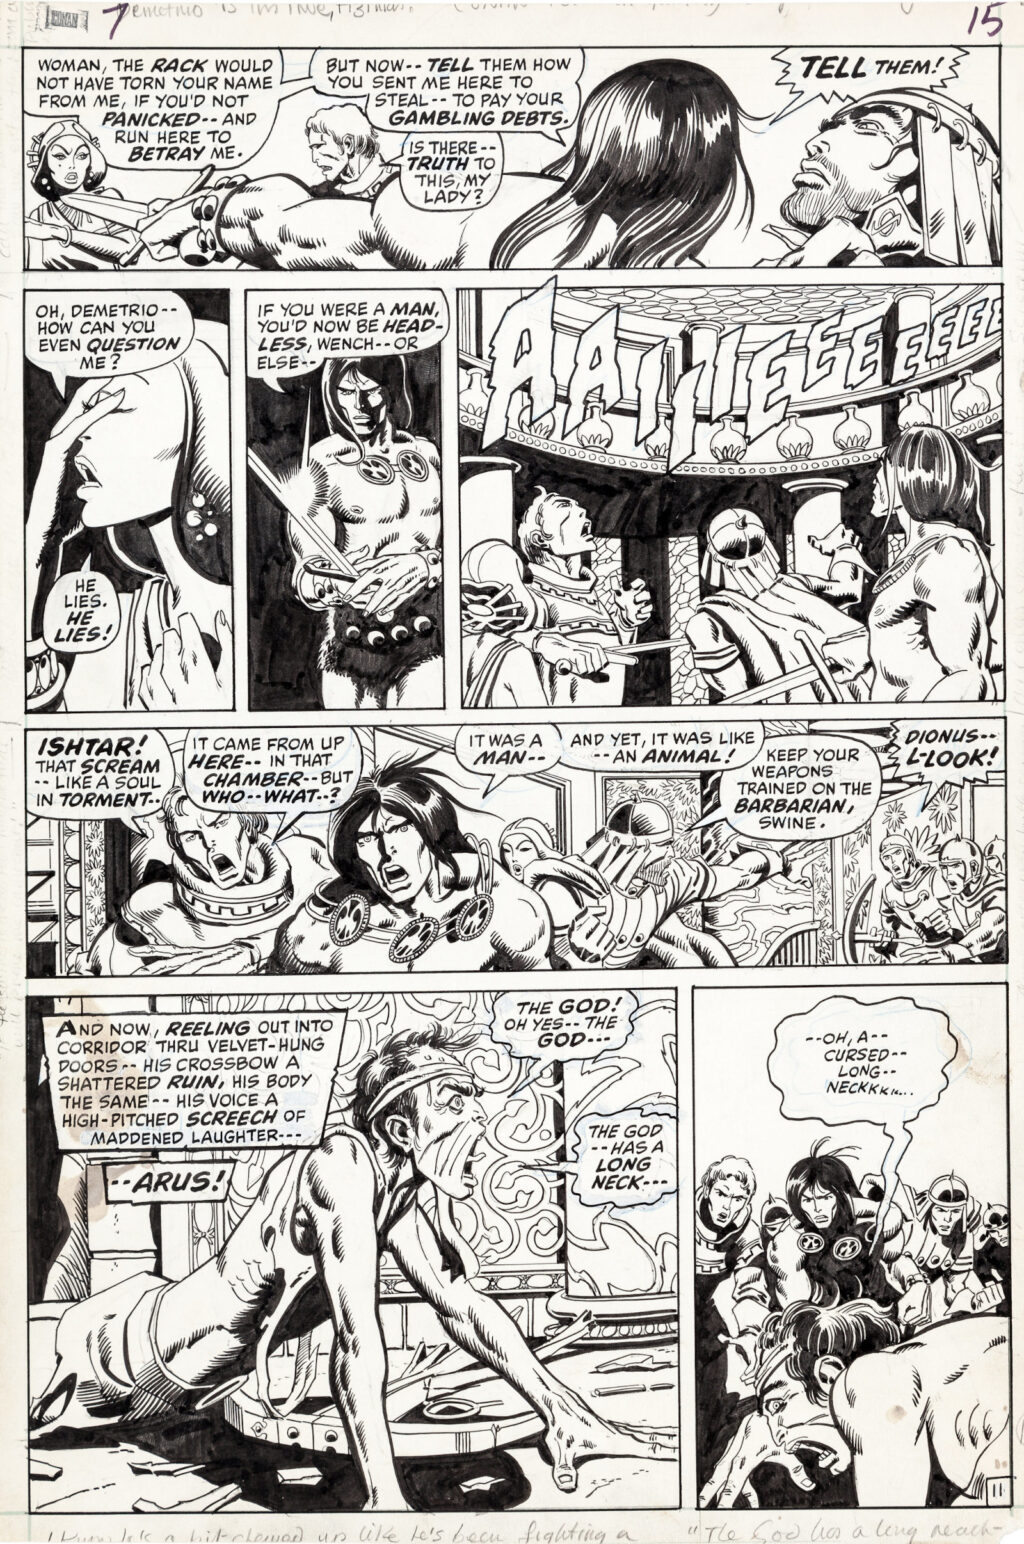 Conan the Barbarian issue 7 page 11 by Barry Smith and Sal Buscema